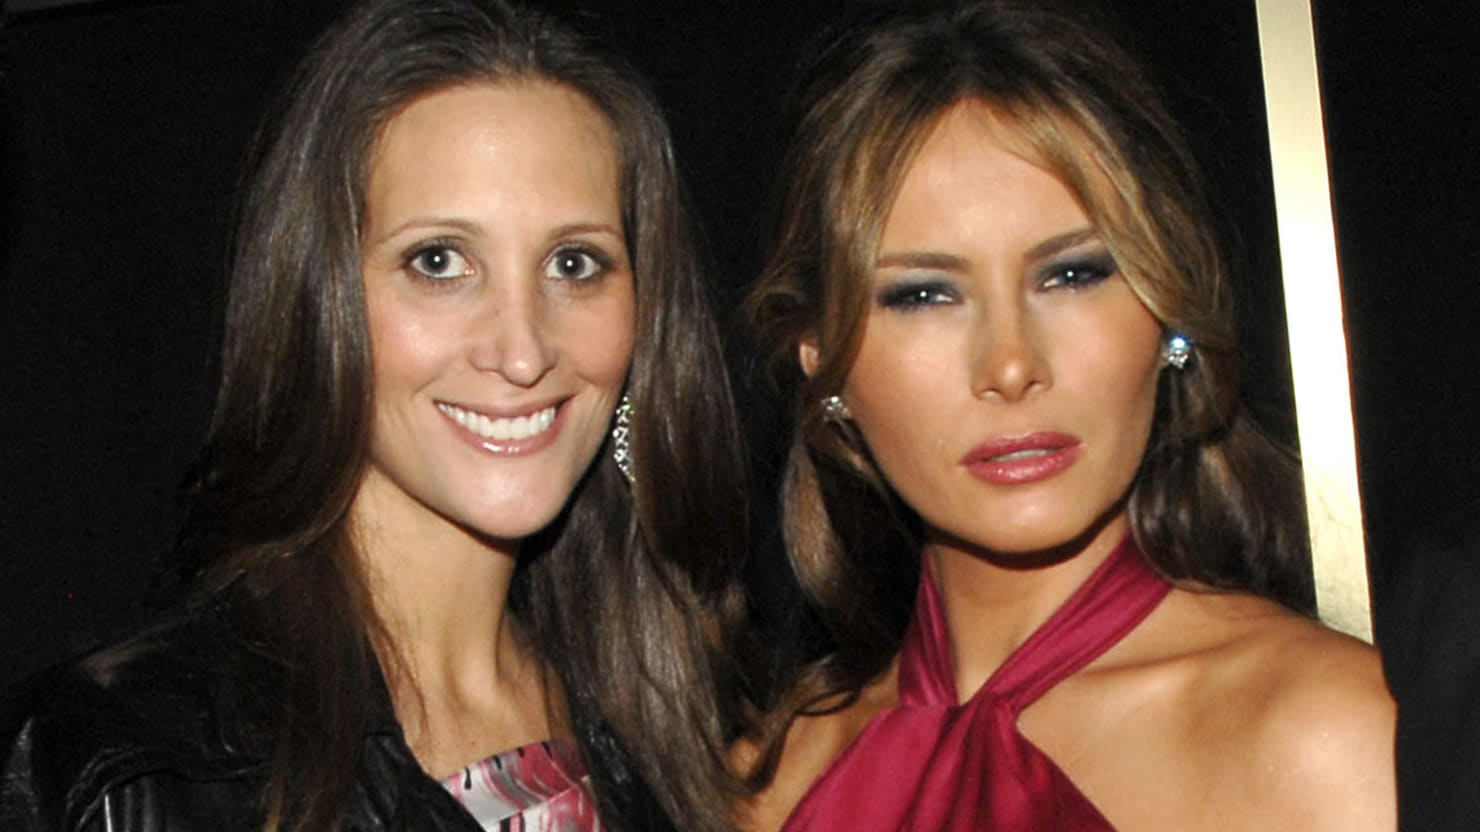 Former Melania Trump Confidante to Release an 'Explosive' Tell-All Before the Election